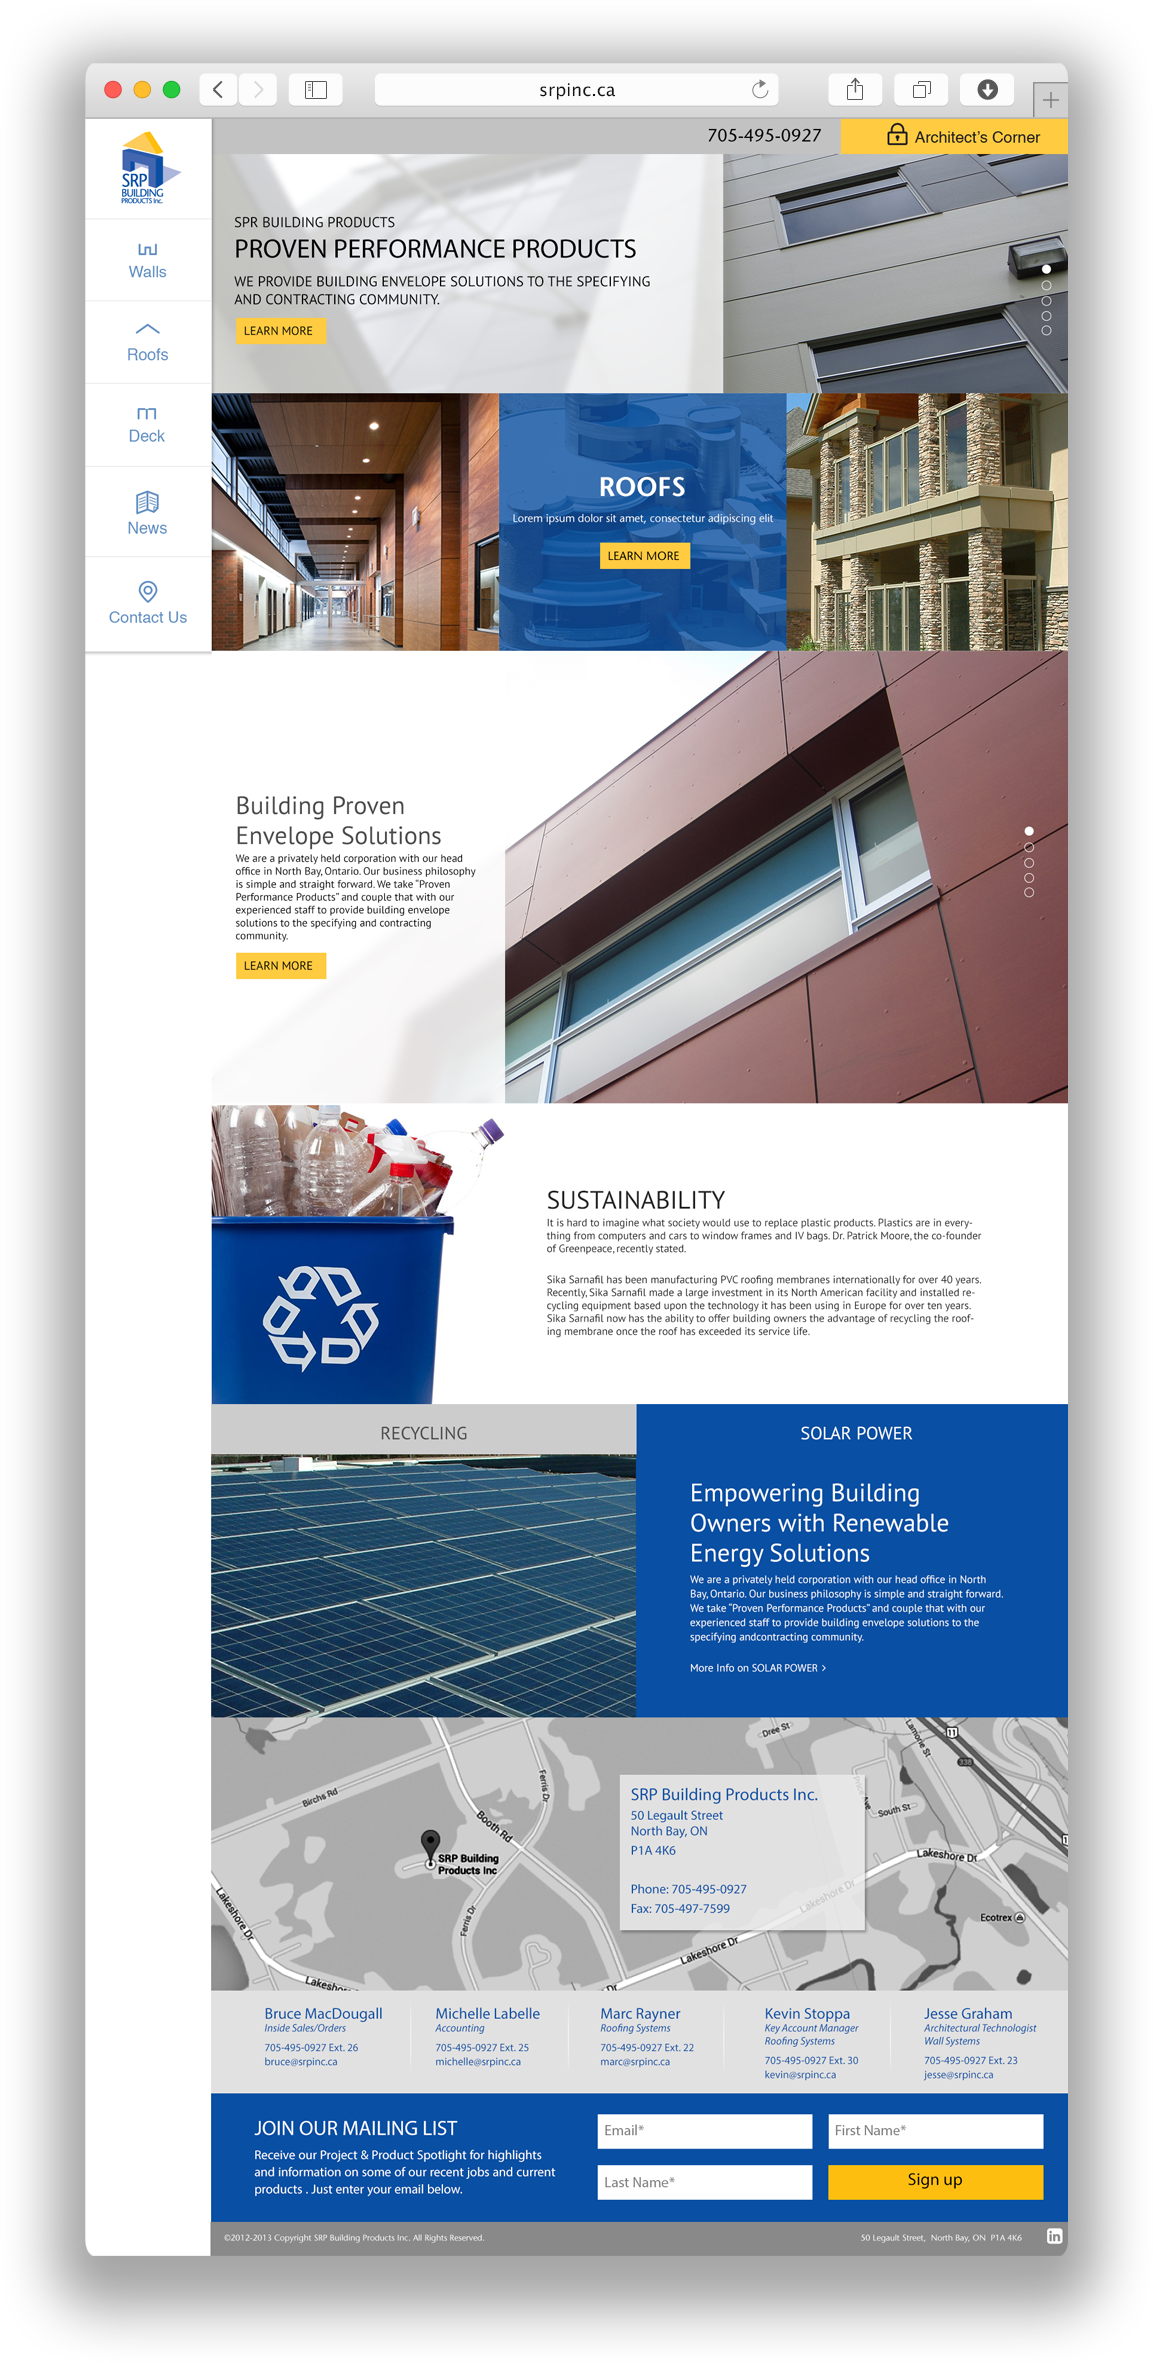 SRP Building Products website design